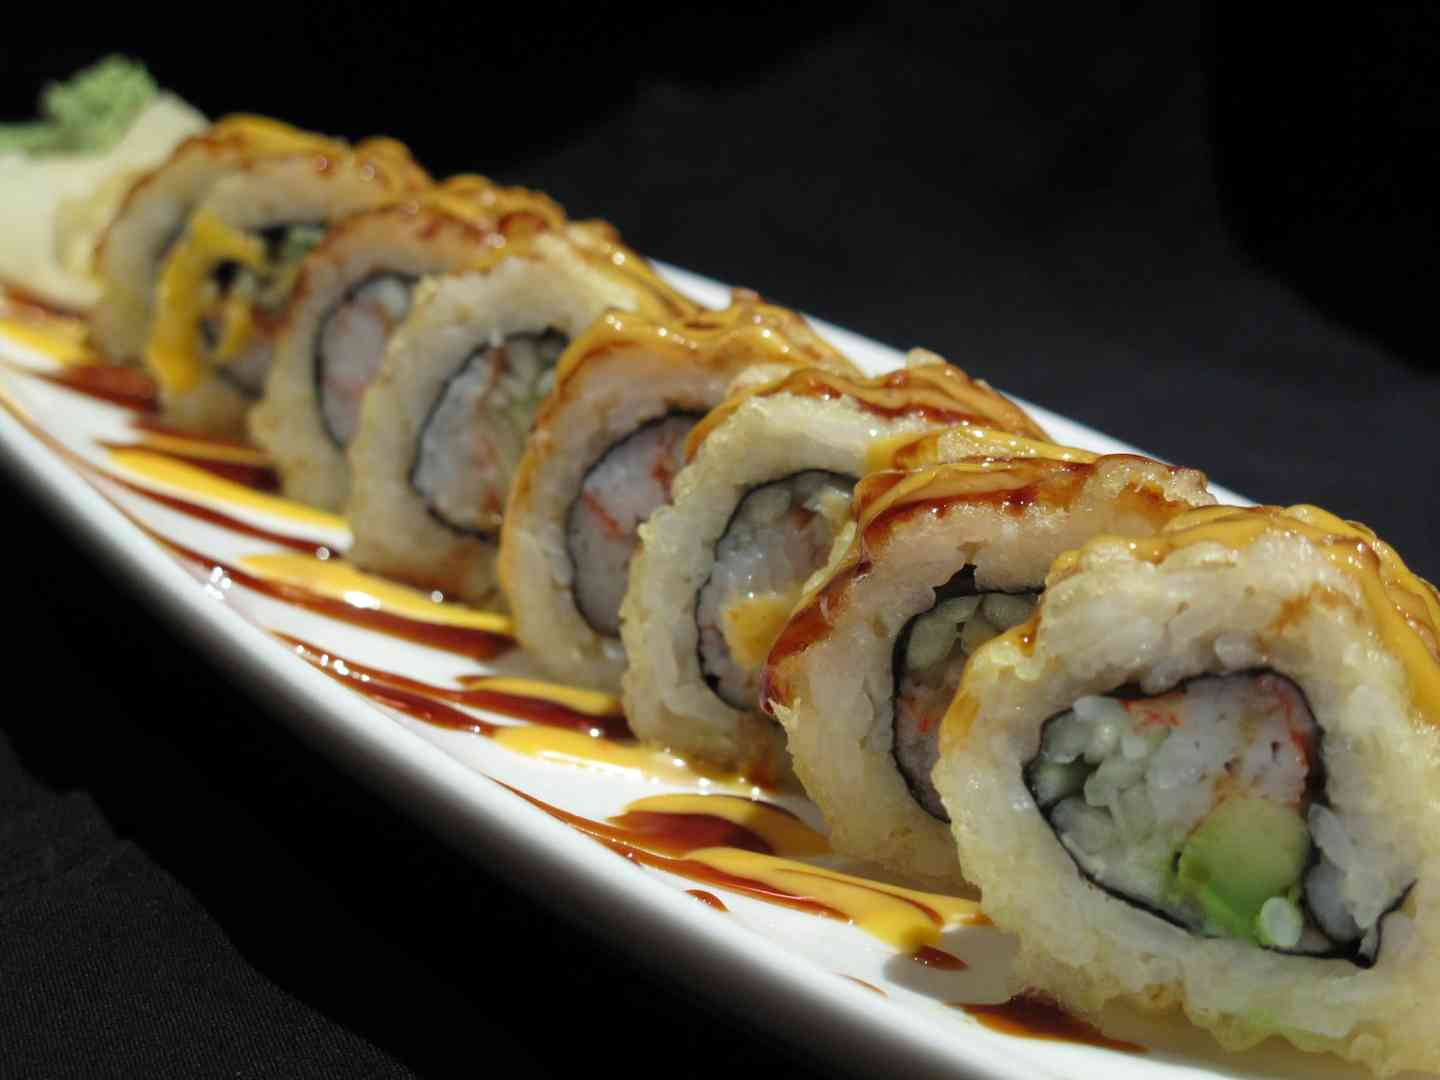 California Crunchy Roll